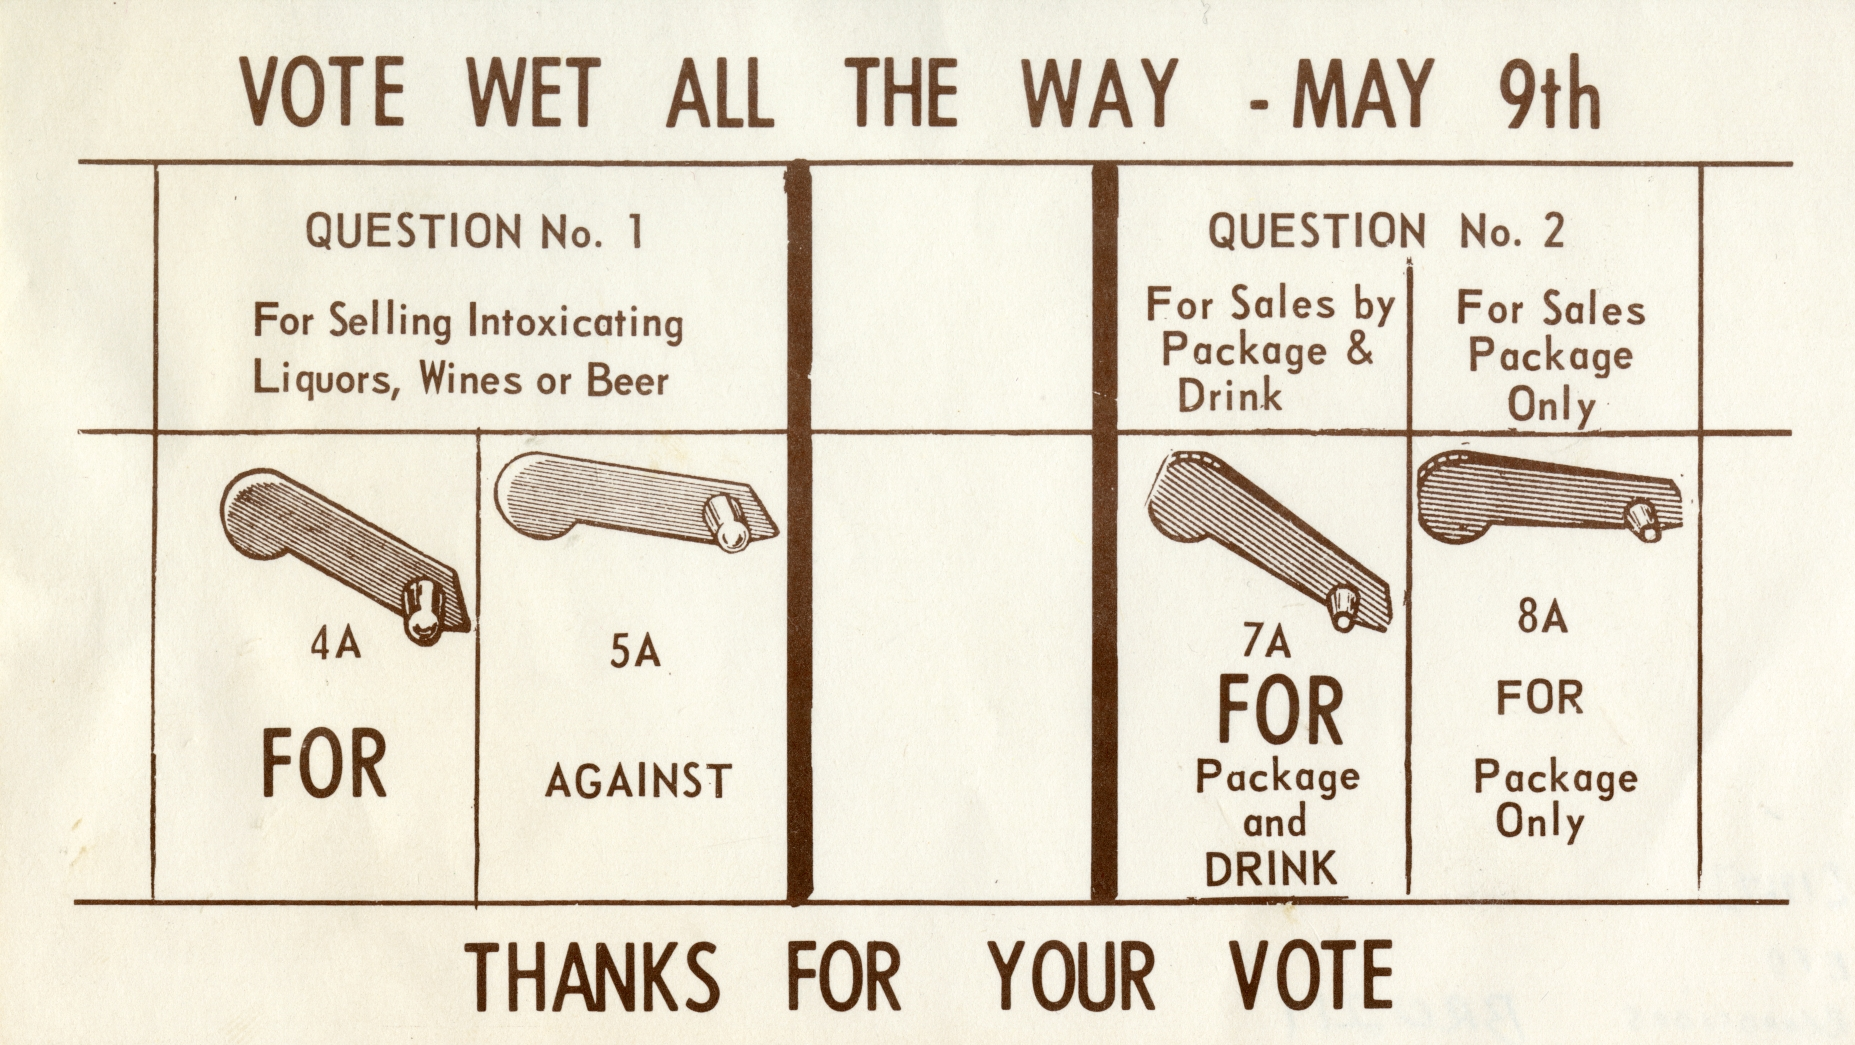 Vote wet all the way - May 9th